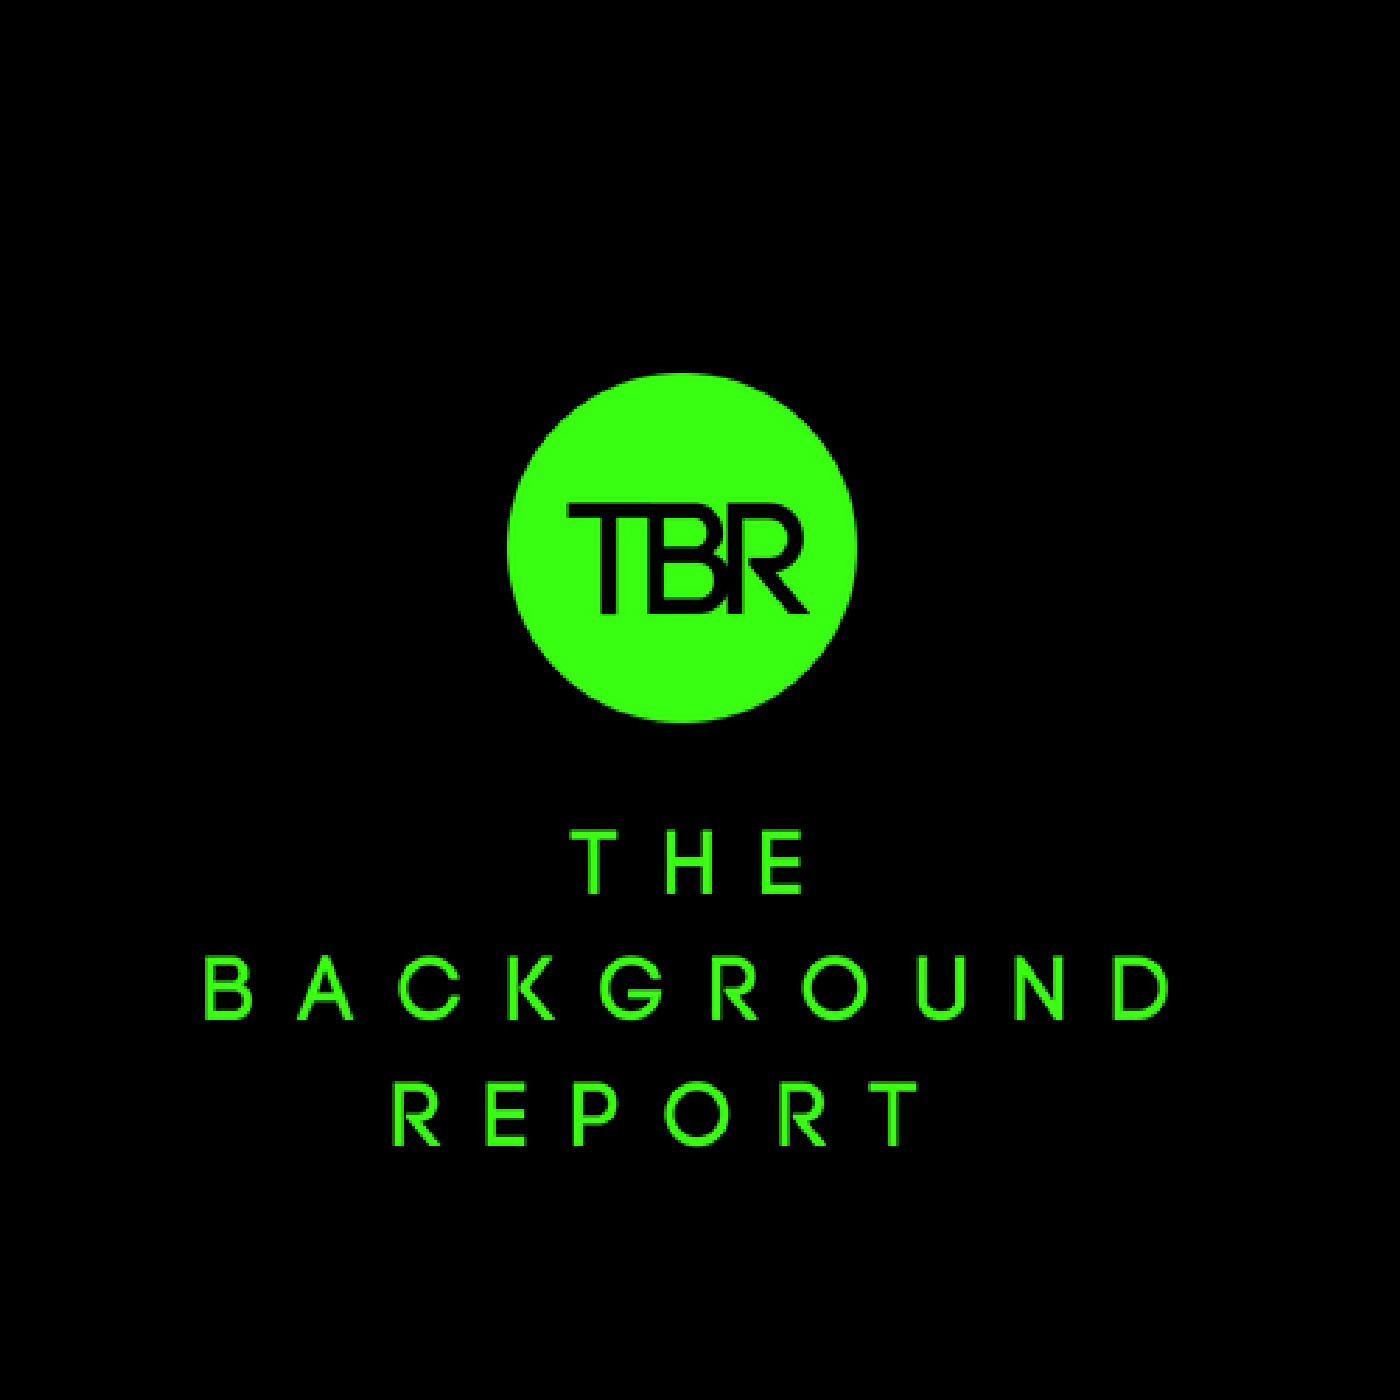 The Background Report